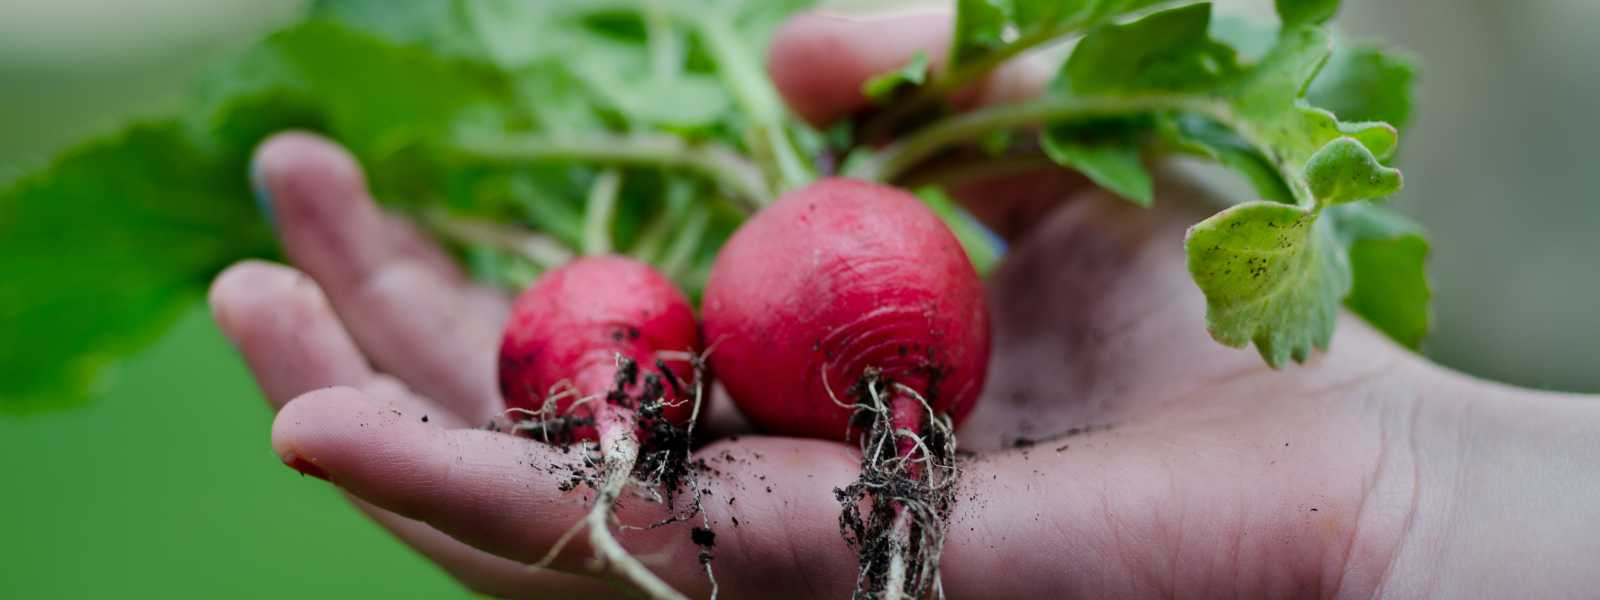 image of a hand holding radishes freshly pulled from the soil